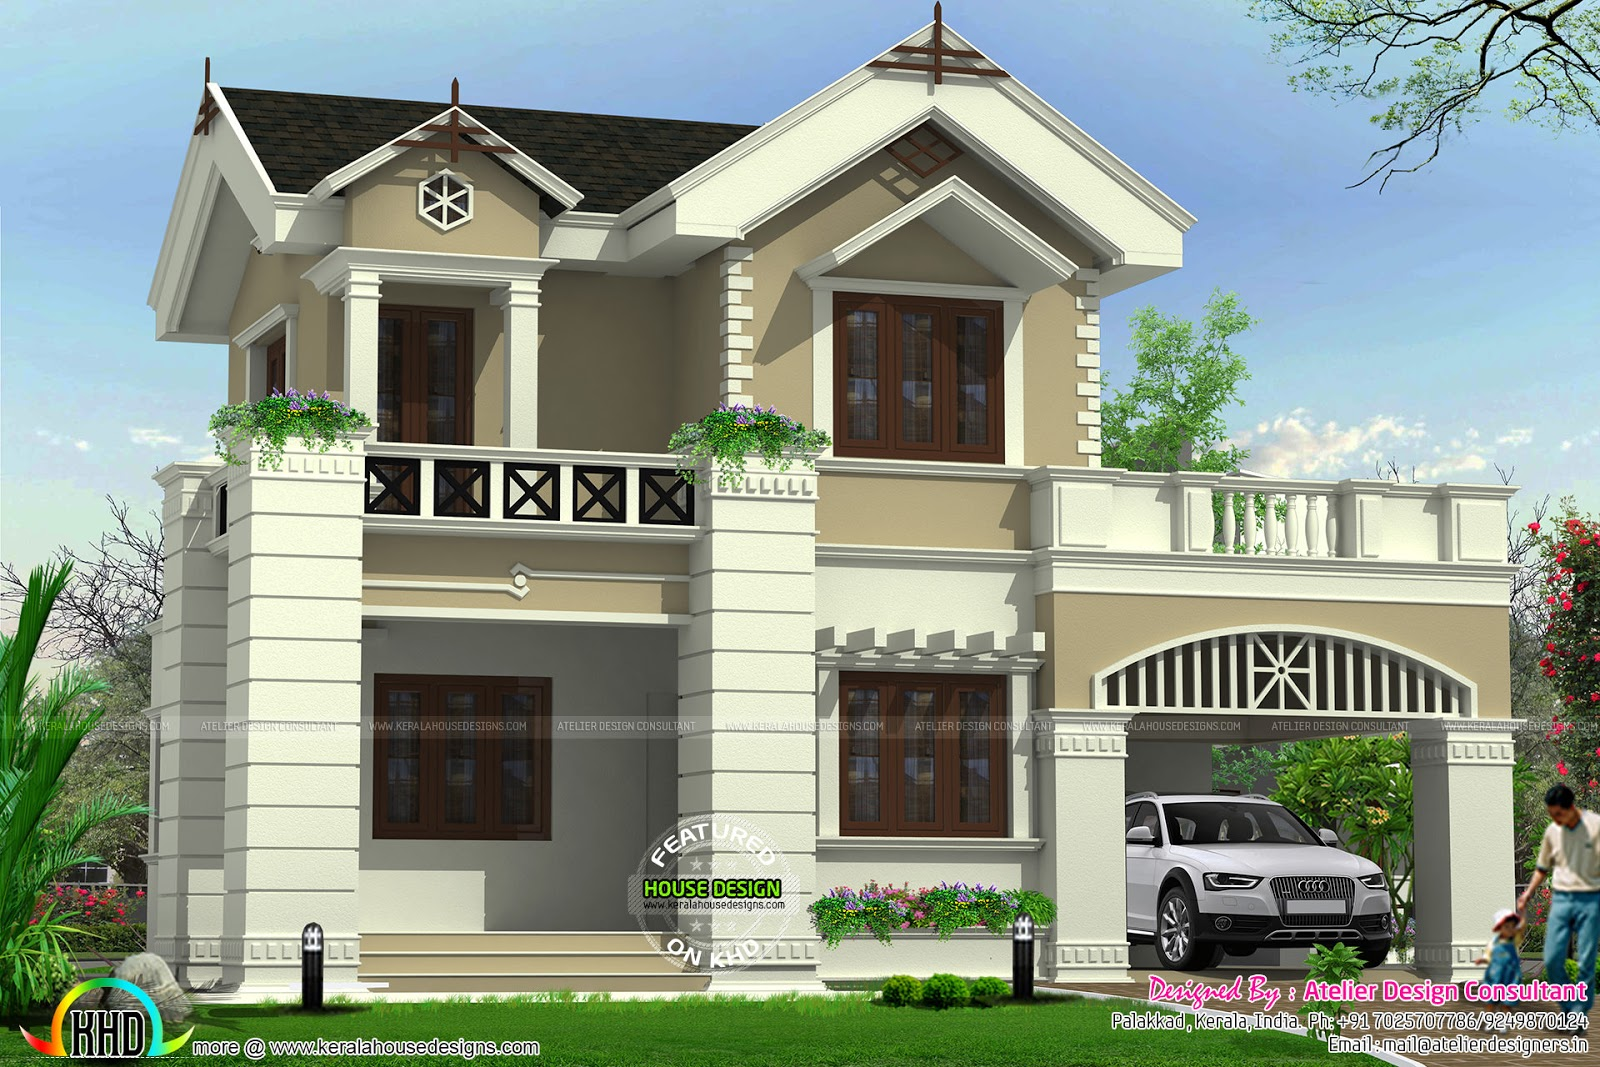 Cute victorian model home kerala home design and floor plans for Houses models